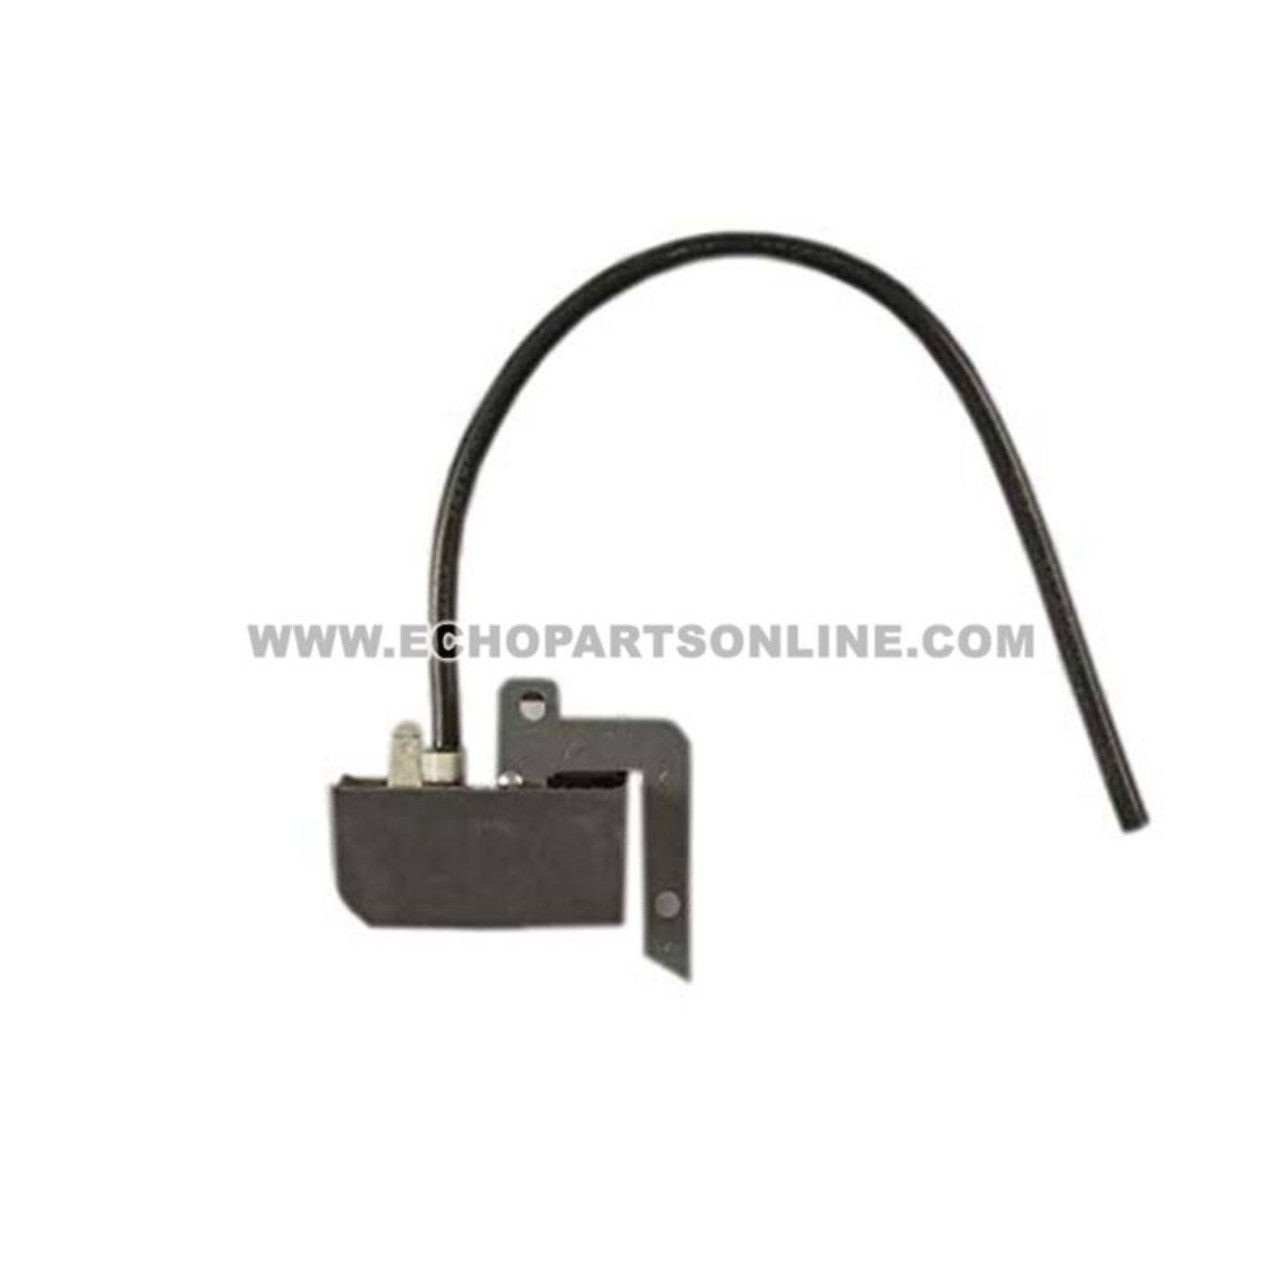 IGNITION A411000021 Genuine echo Part COIL